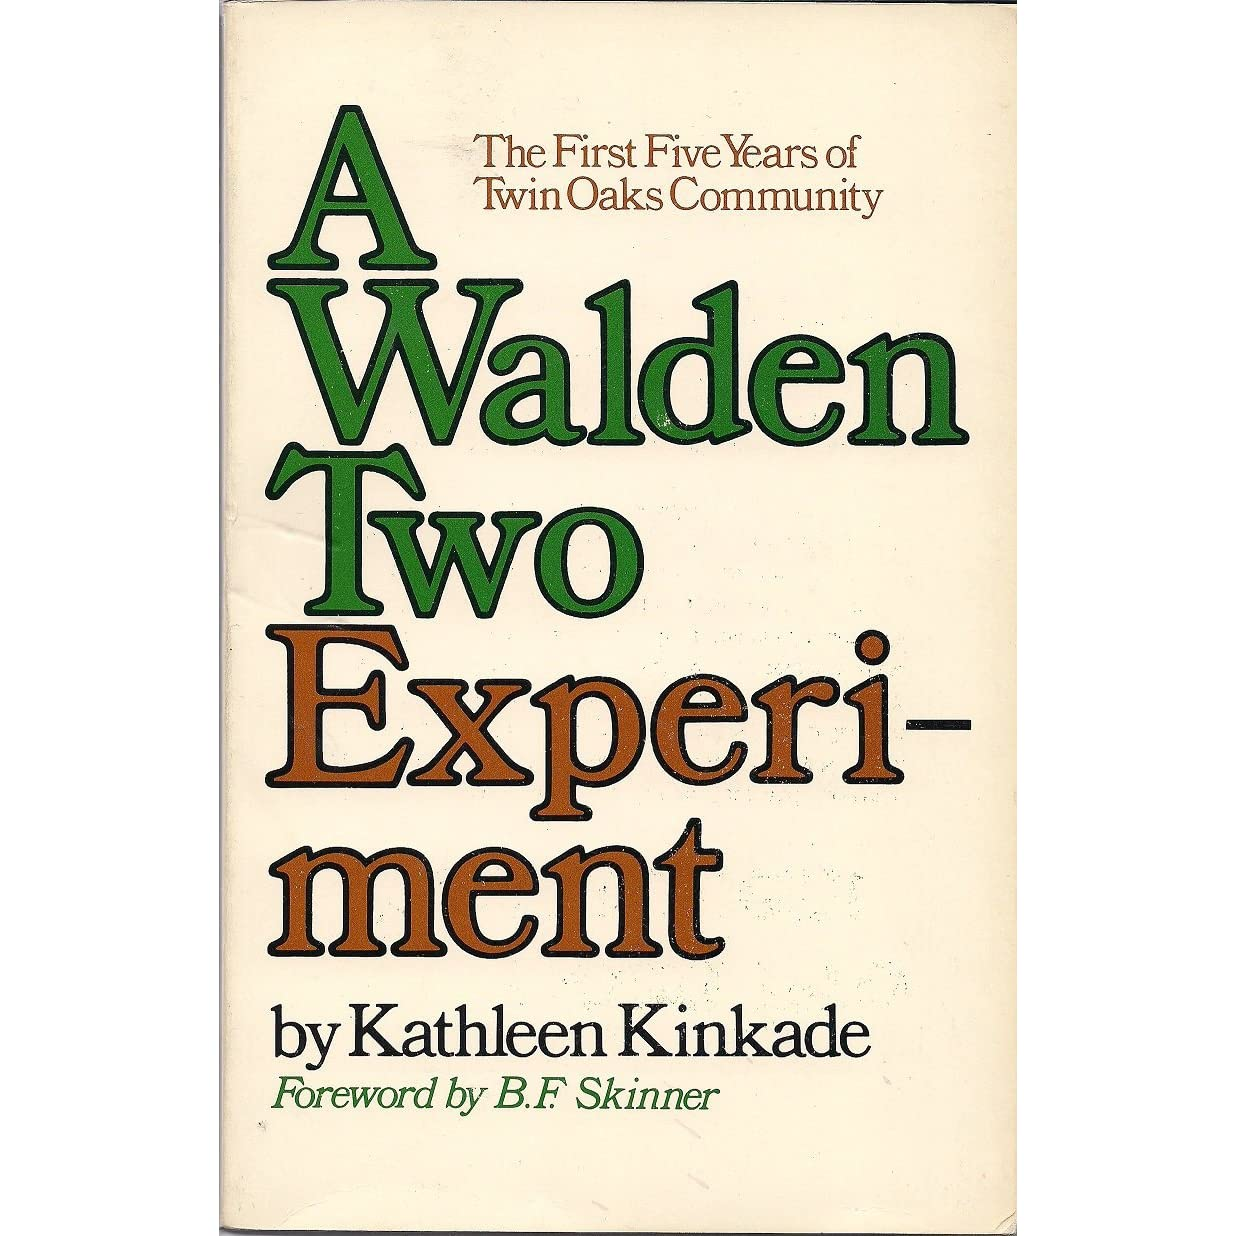 a synopsis of walden two by bf skinner Walden two - wikipedia walden two is a utopian novel written by behavioral psychologist b f skinner, first published in 1948 in its time, it could have been considered science fiction, since science-based methods for altering people's behavior did not yet exist.